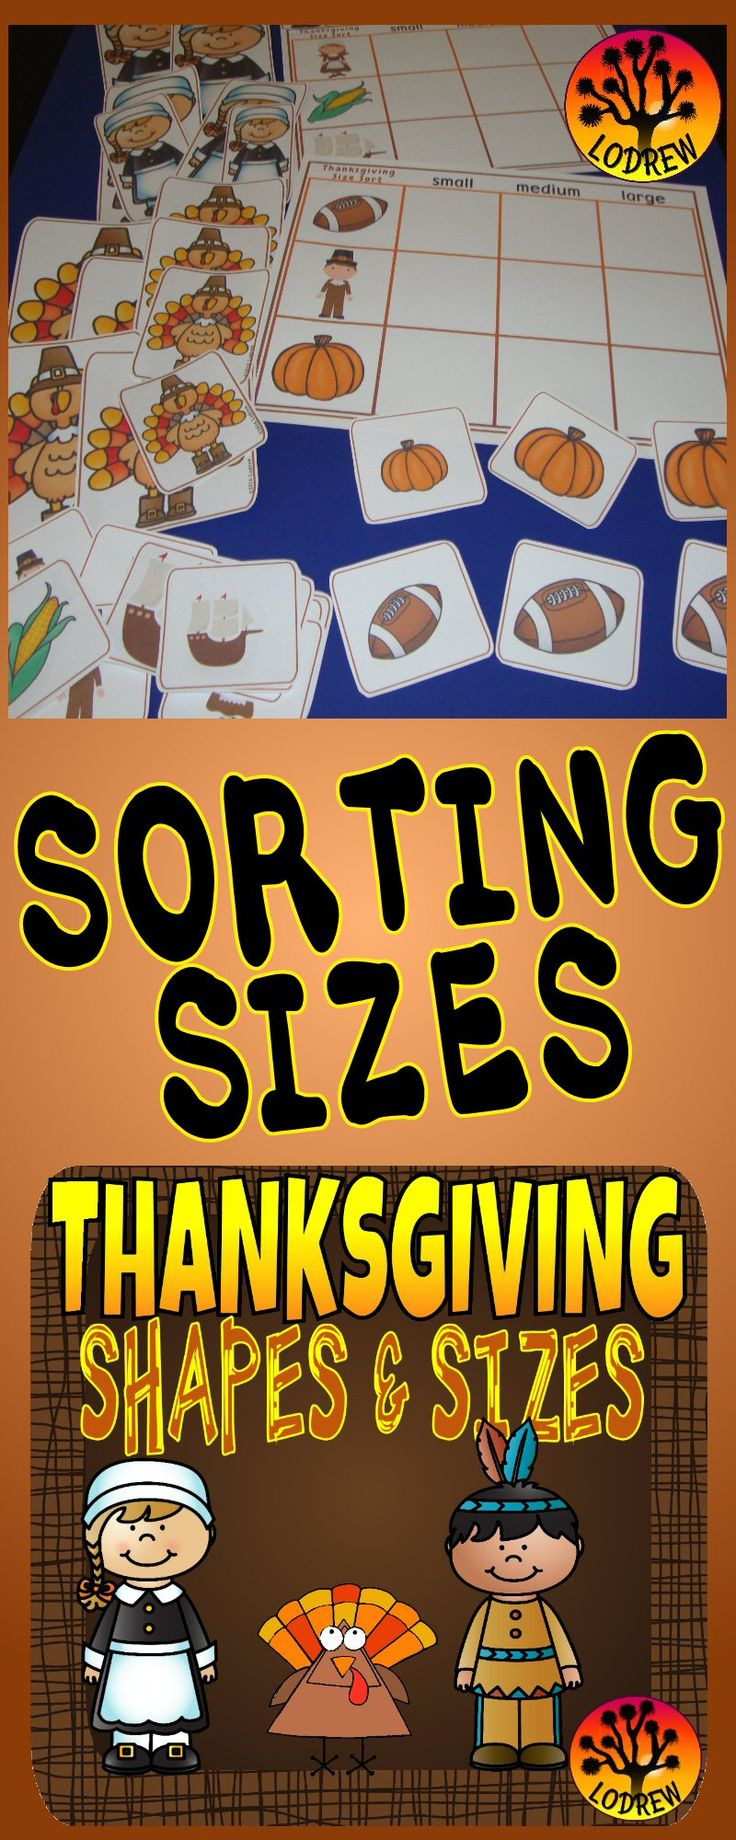 37 pages of Thanksgiving themed centers focusing on shapes and sizes. Activities include visual discrimination, math, shapes, geometry, sorting, sizes, and more. Great for kindergarten, preschool, SPED, child care, homeschool, or any early childhood setting.